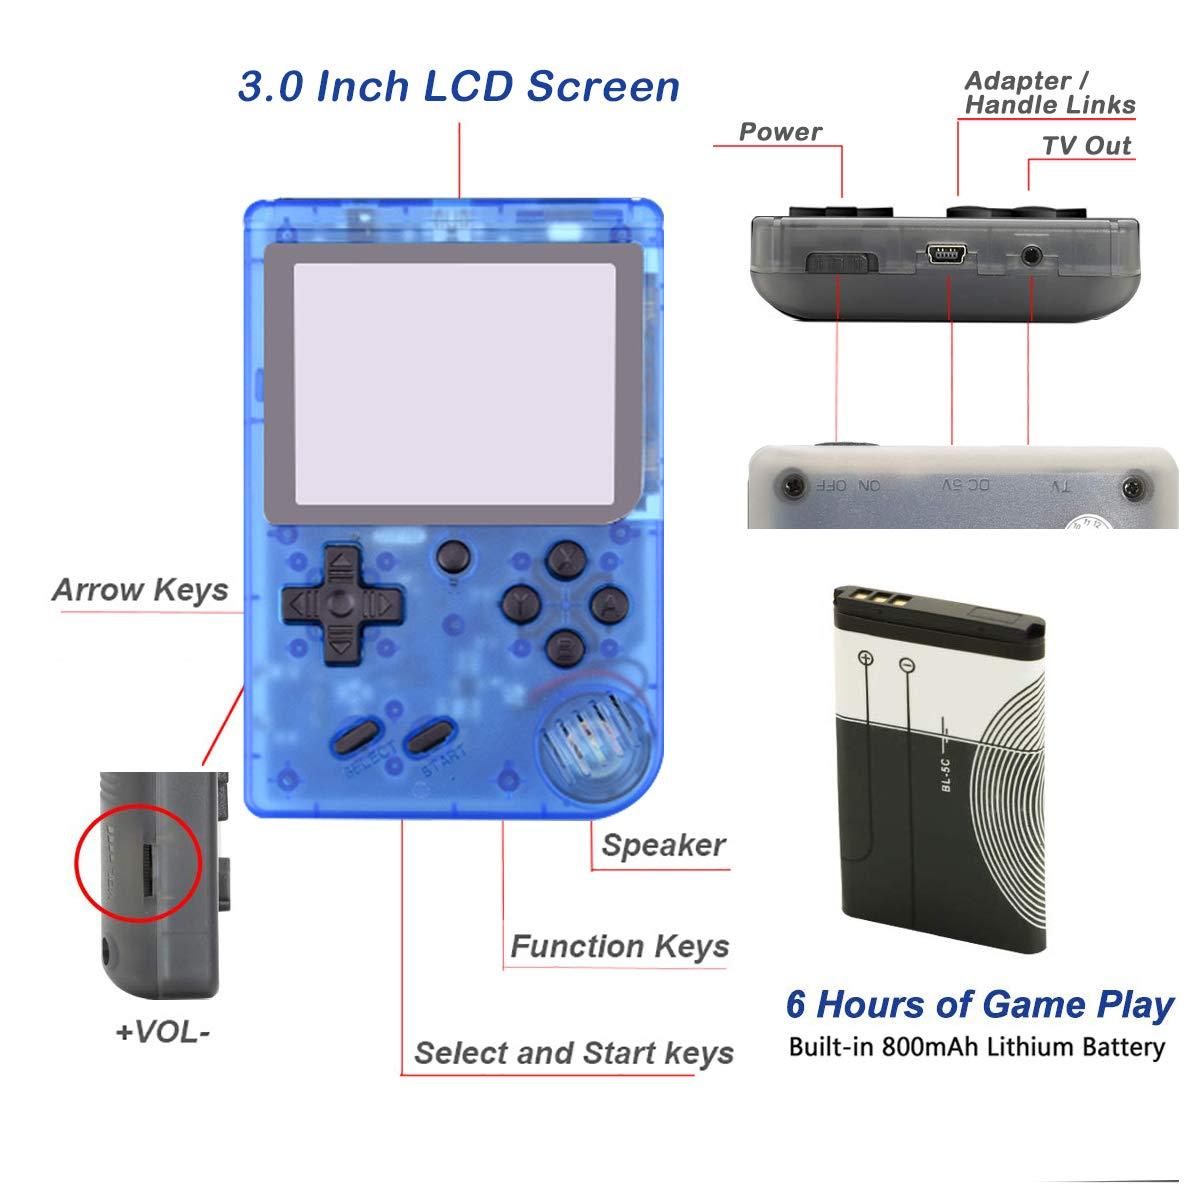 Efunlife Handheld Game Console, 360 Classic Games 3 Inch LCD Screen Retro FC System Portable Sized Game Console Support AV Out TV, Good Gift for Boy Kids by Efunlife (Image #2)